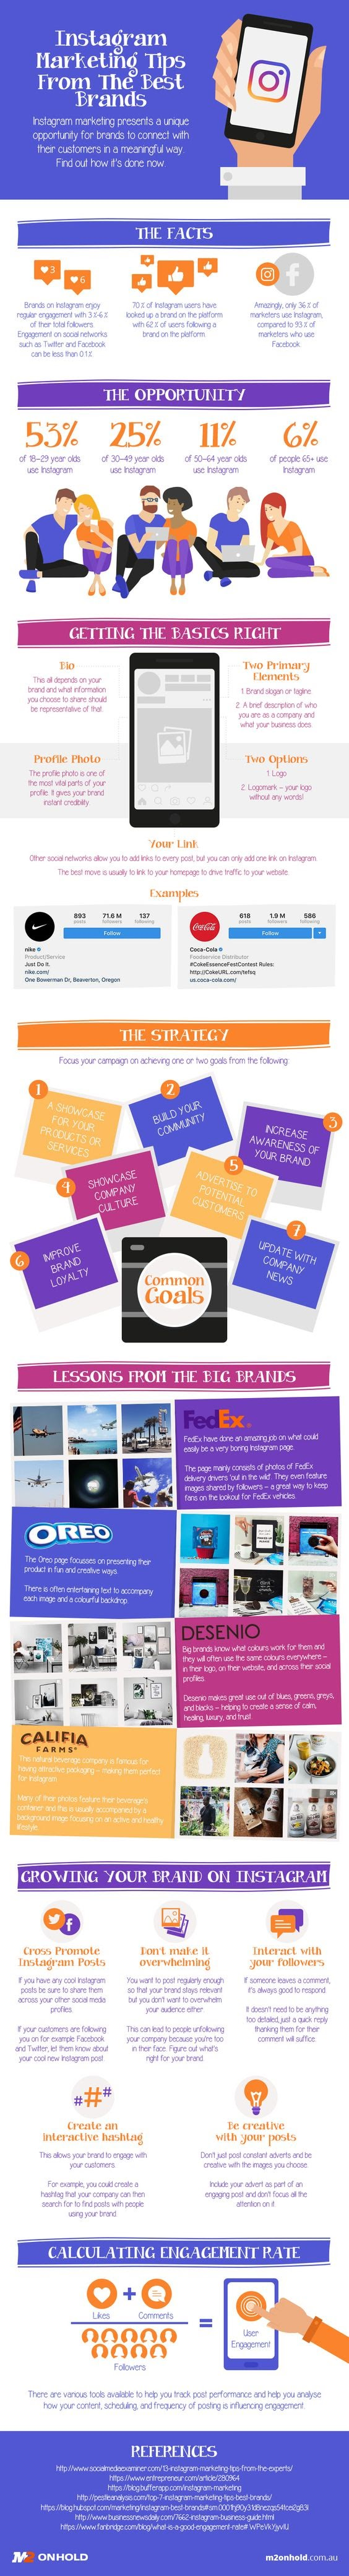 Instagram Marketing Tips from the Best Brands #Infographic